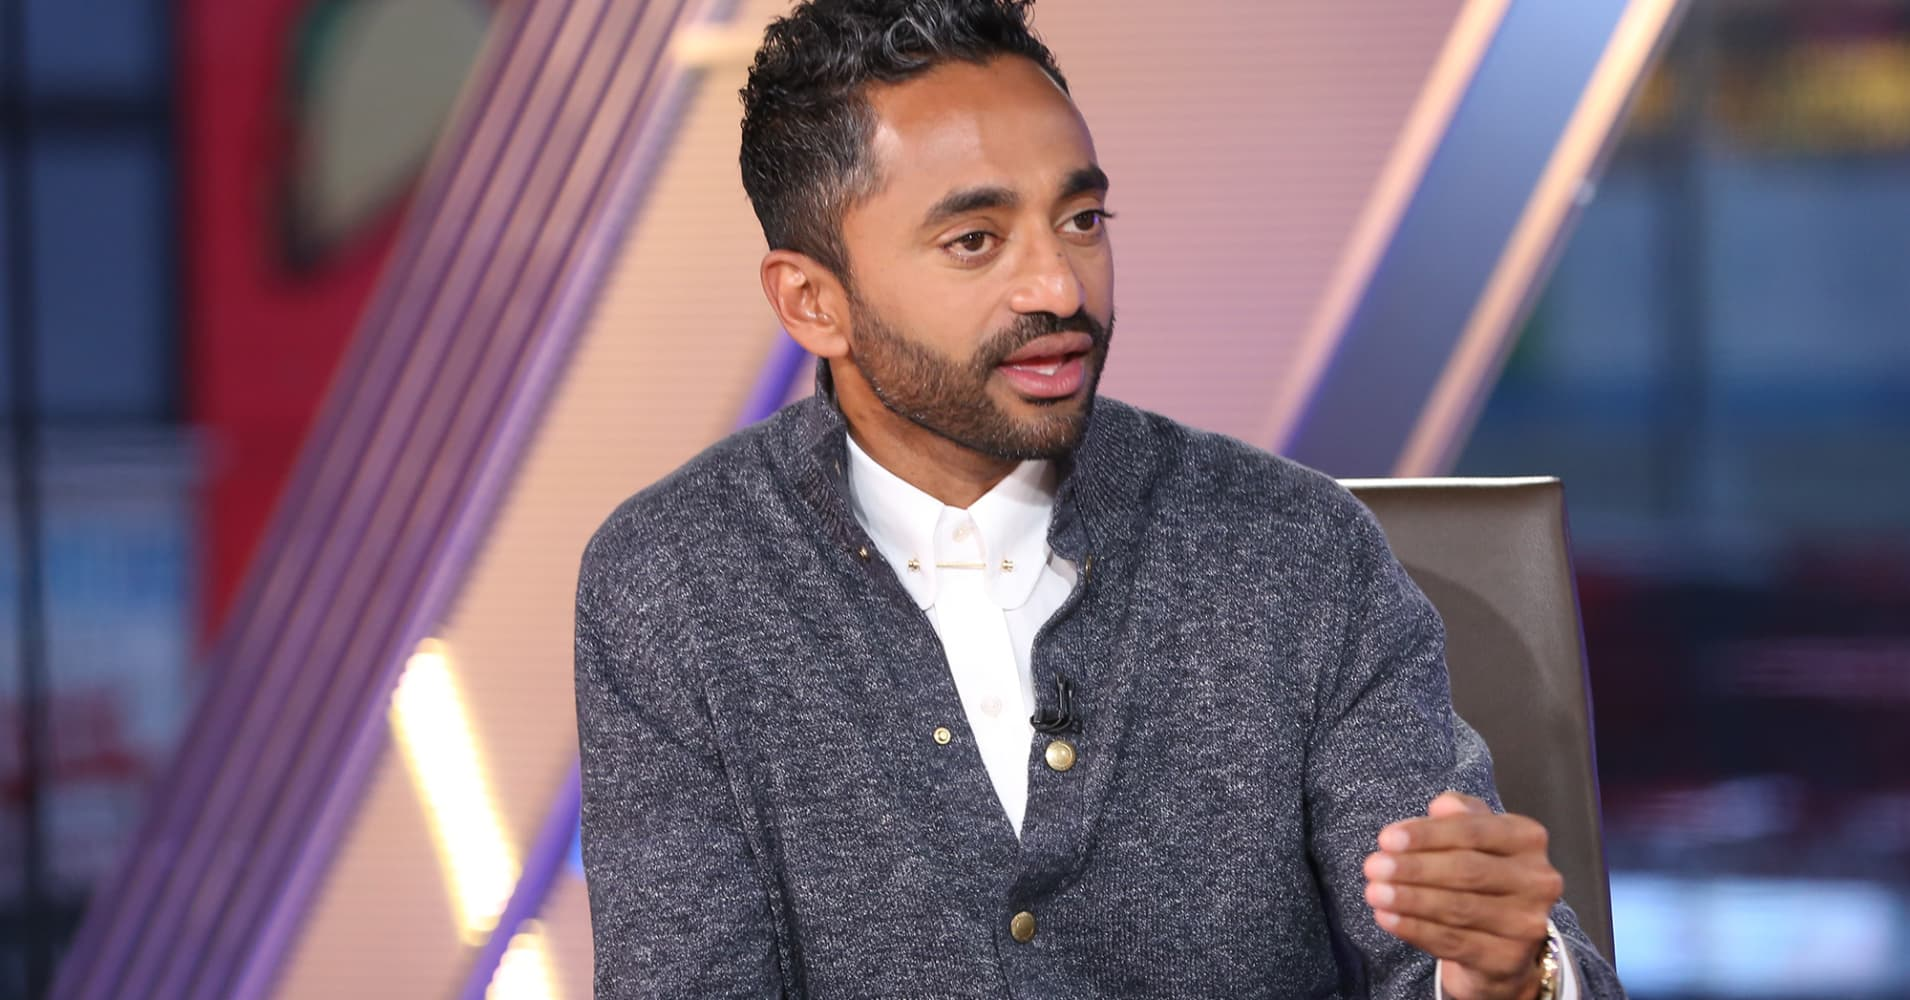 Facebook slams former exec Palihapitiya, saying it 'was a very different company back then, and we've grown'